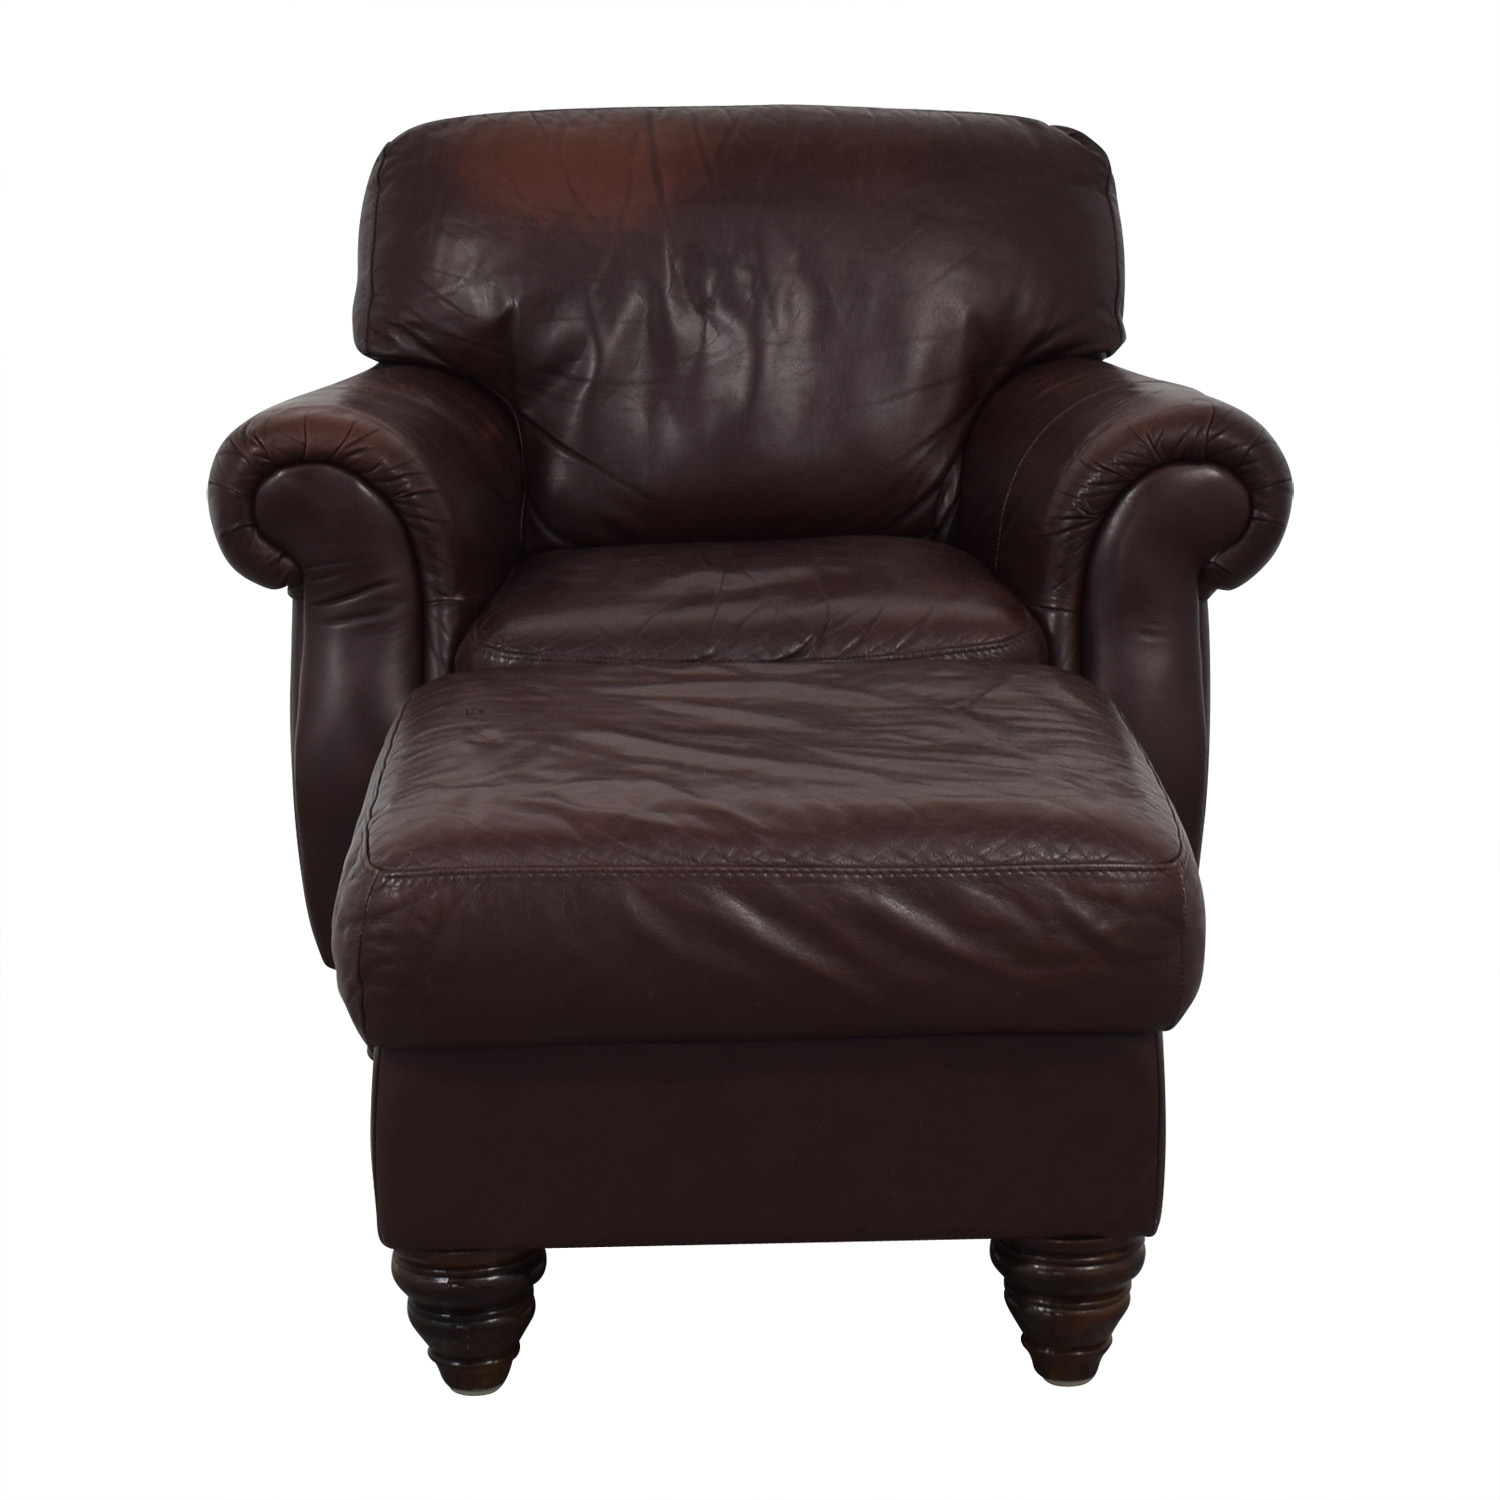 Fortunoff Fortunoff Brown Accent Chair and Ottoman for sale